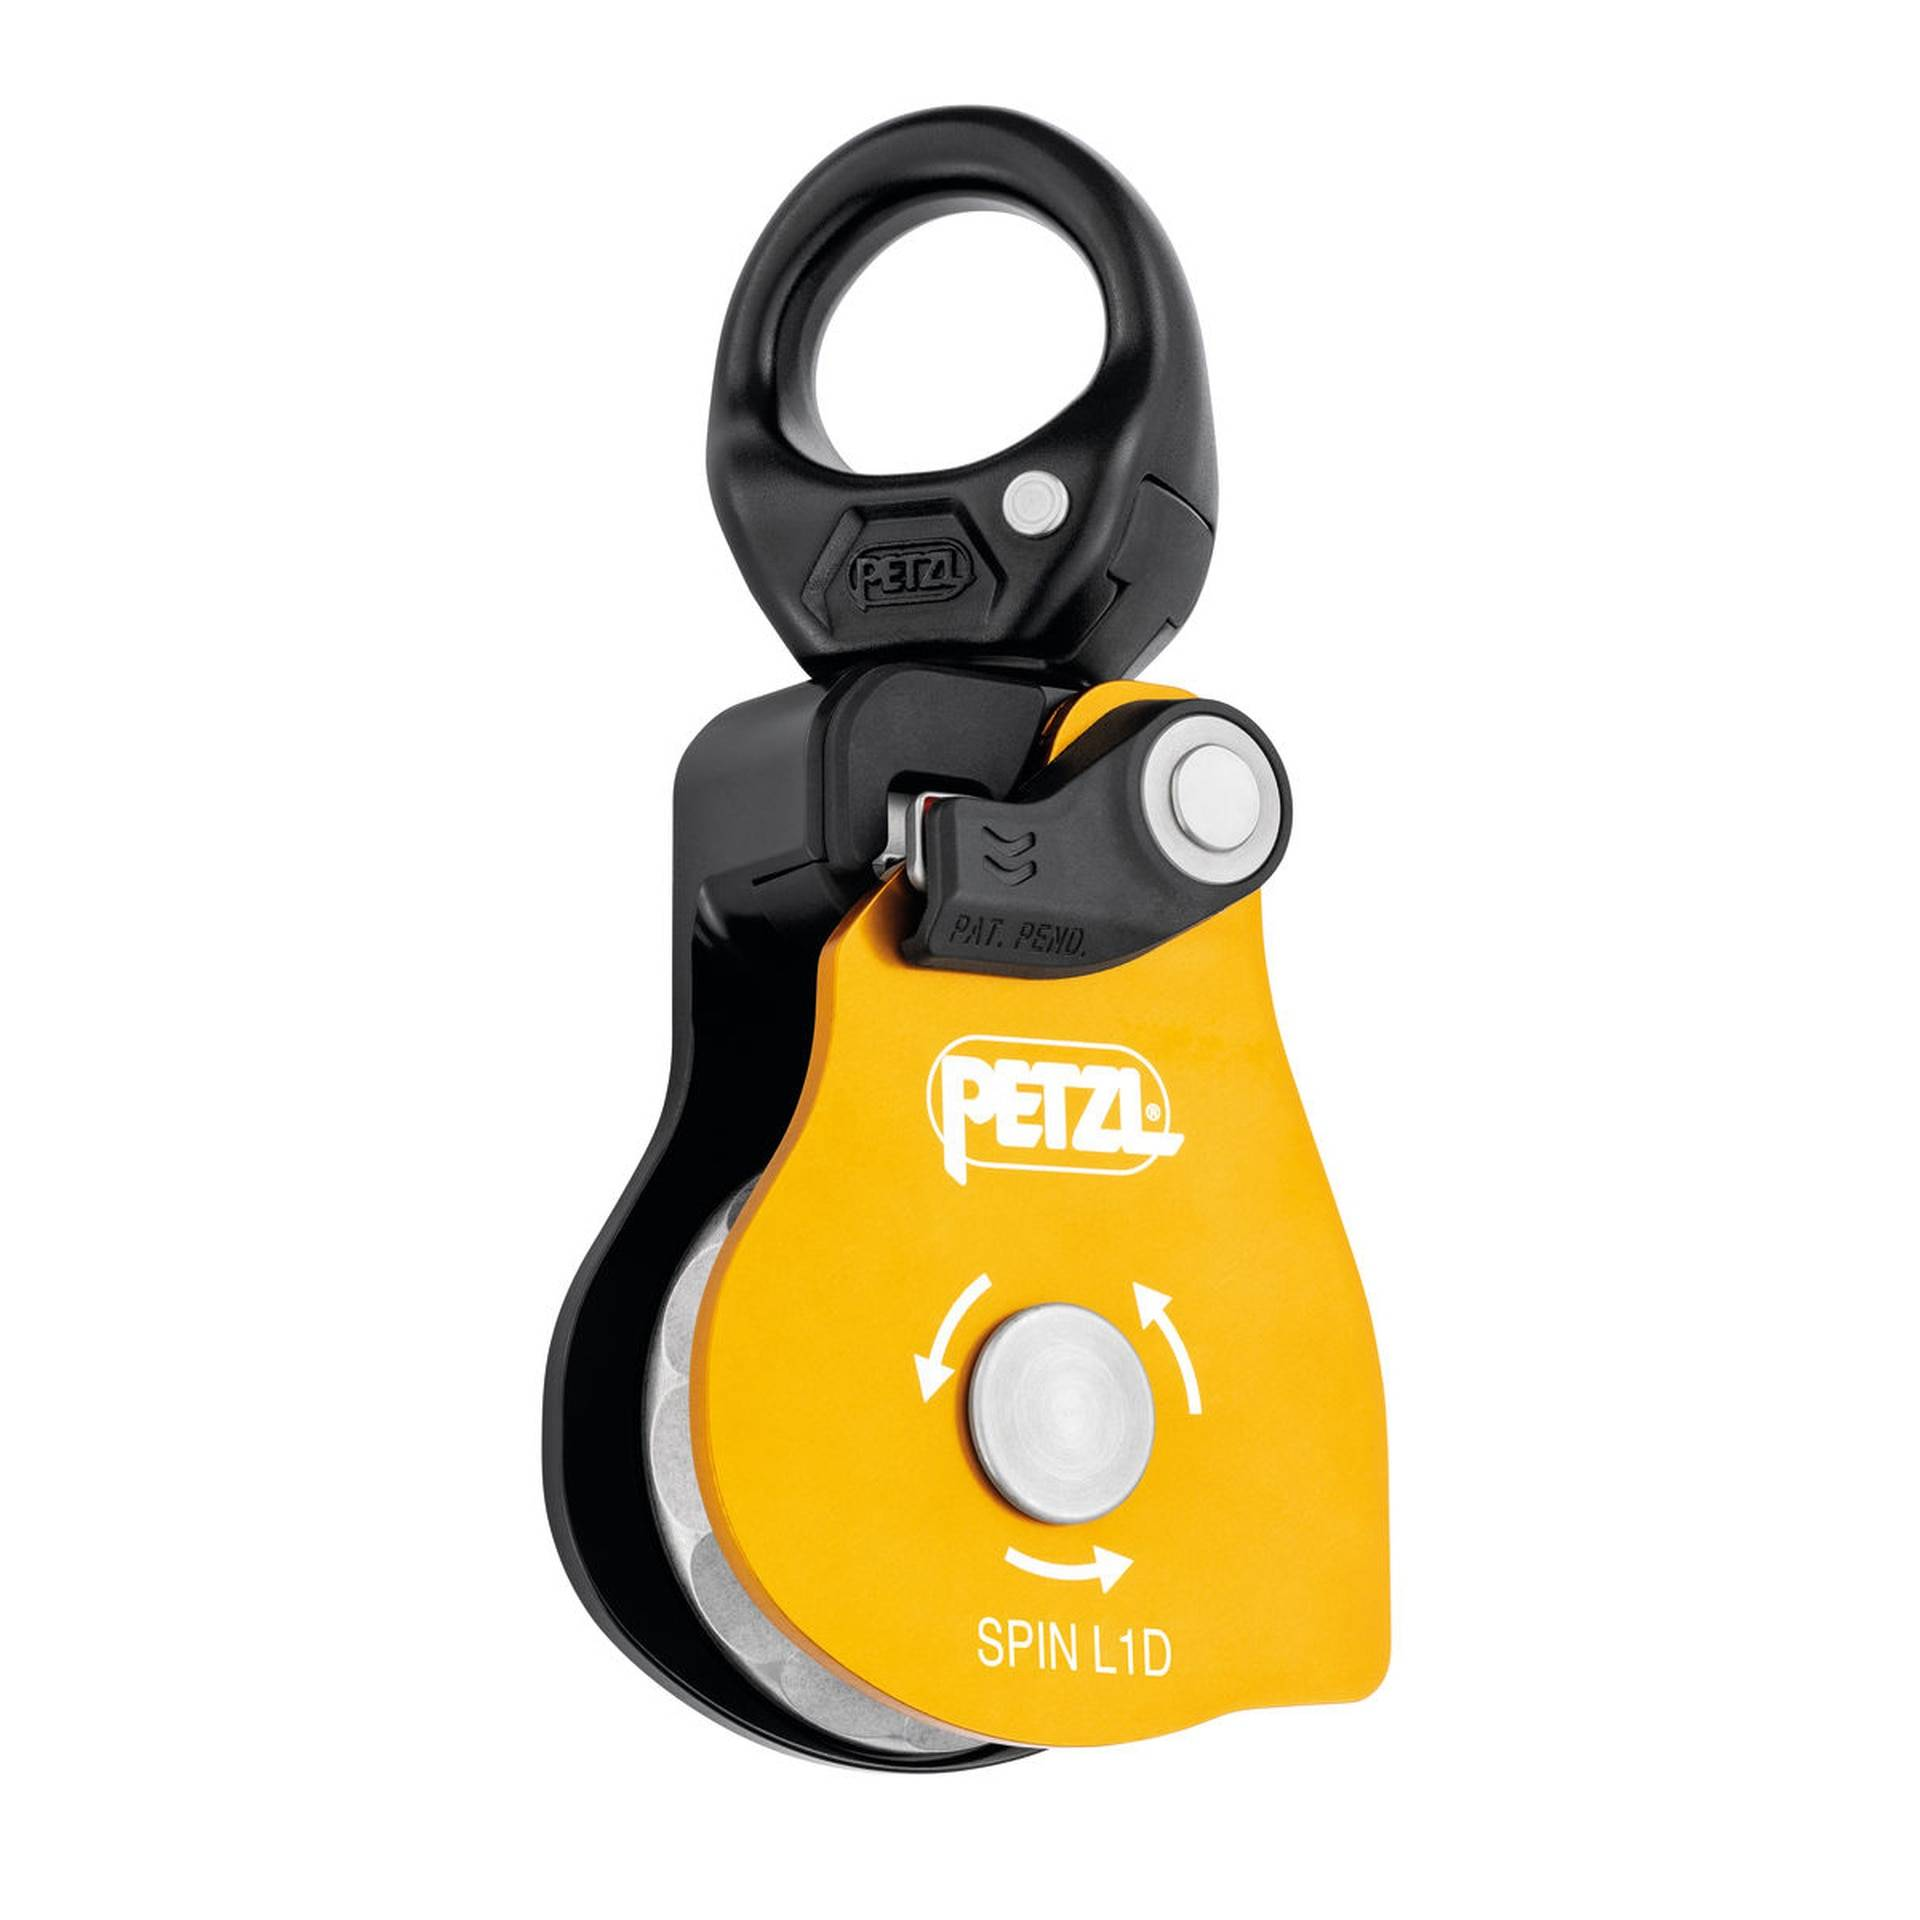 image of Petzl SPIN L1D One Way Rotation Pulley